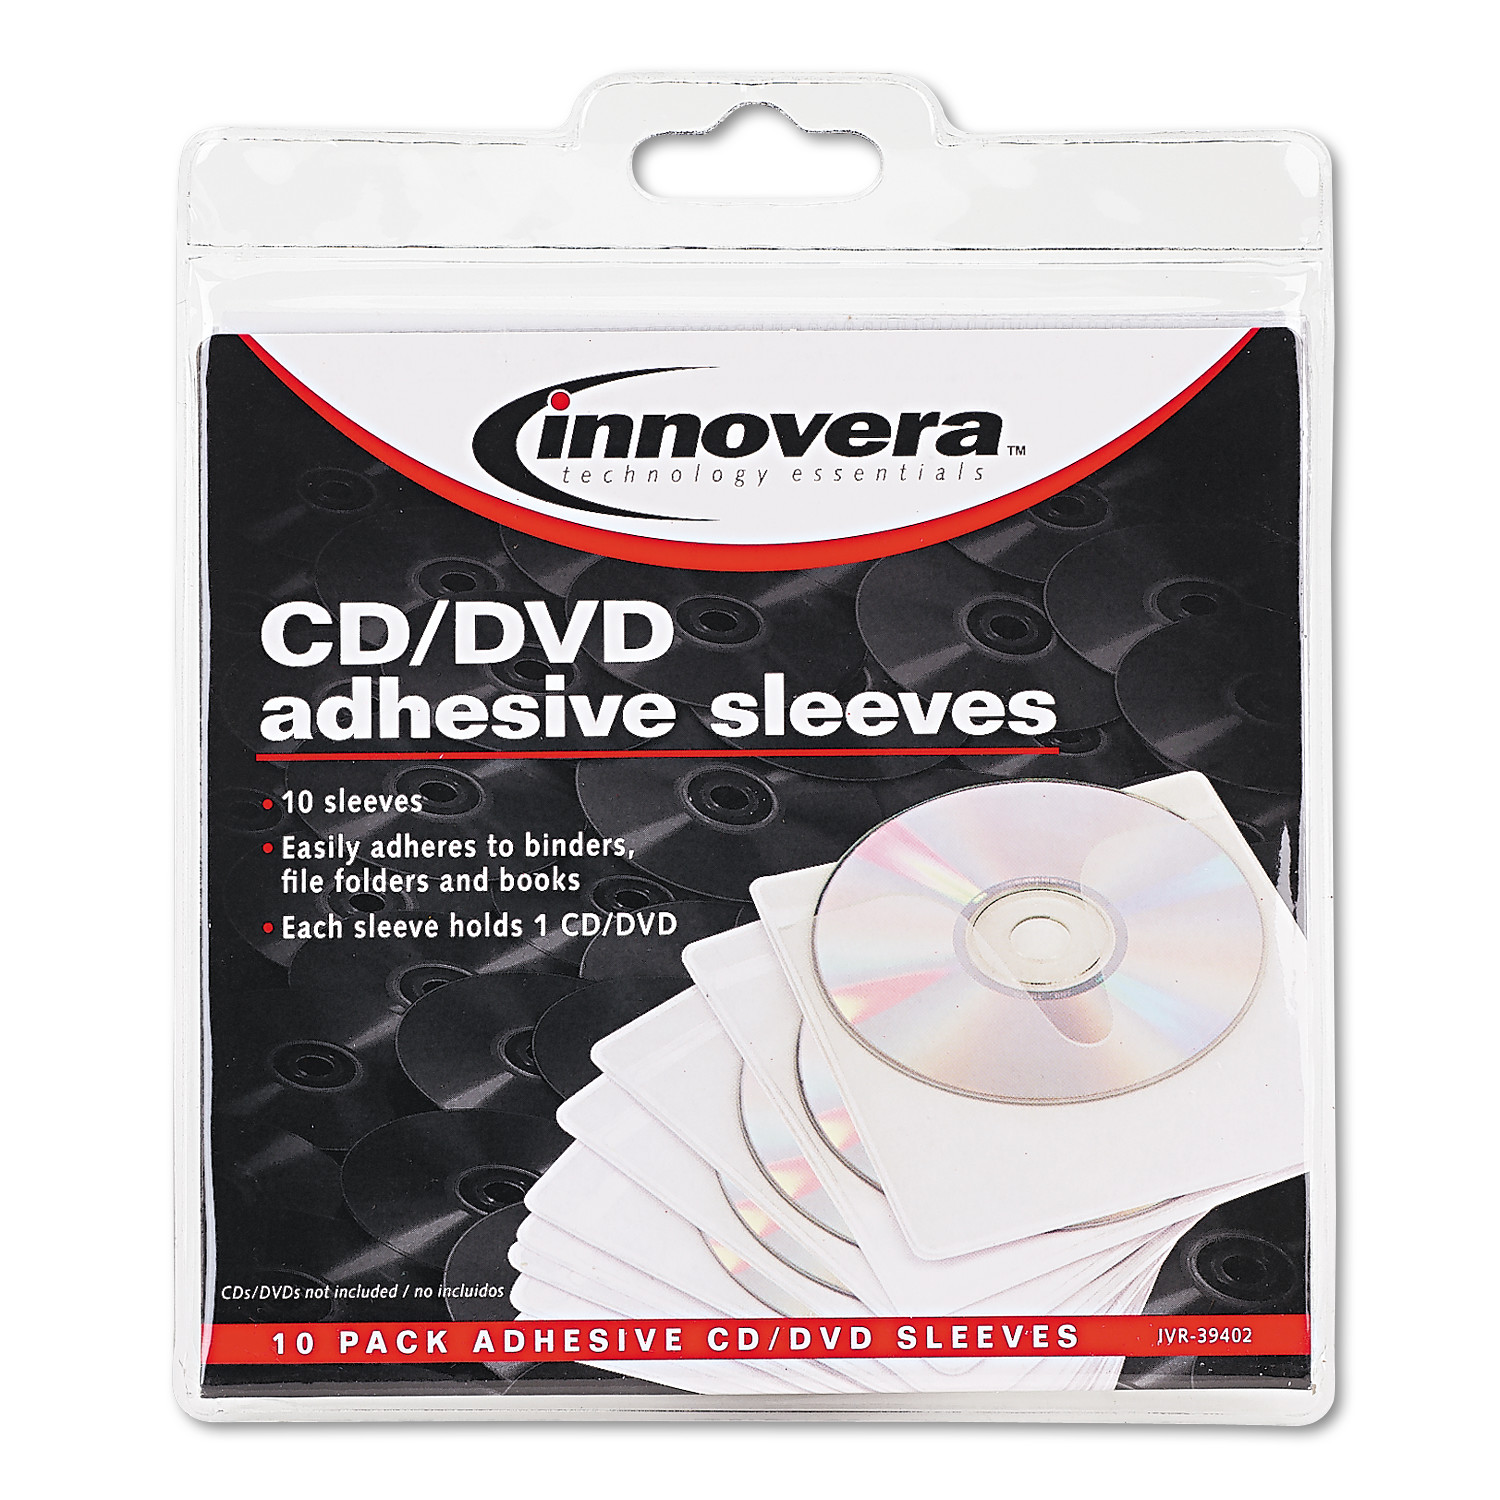 Innovera Self-Adhesive CD/DVD Sleeves, 10/Pack